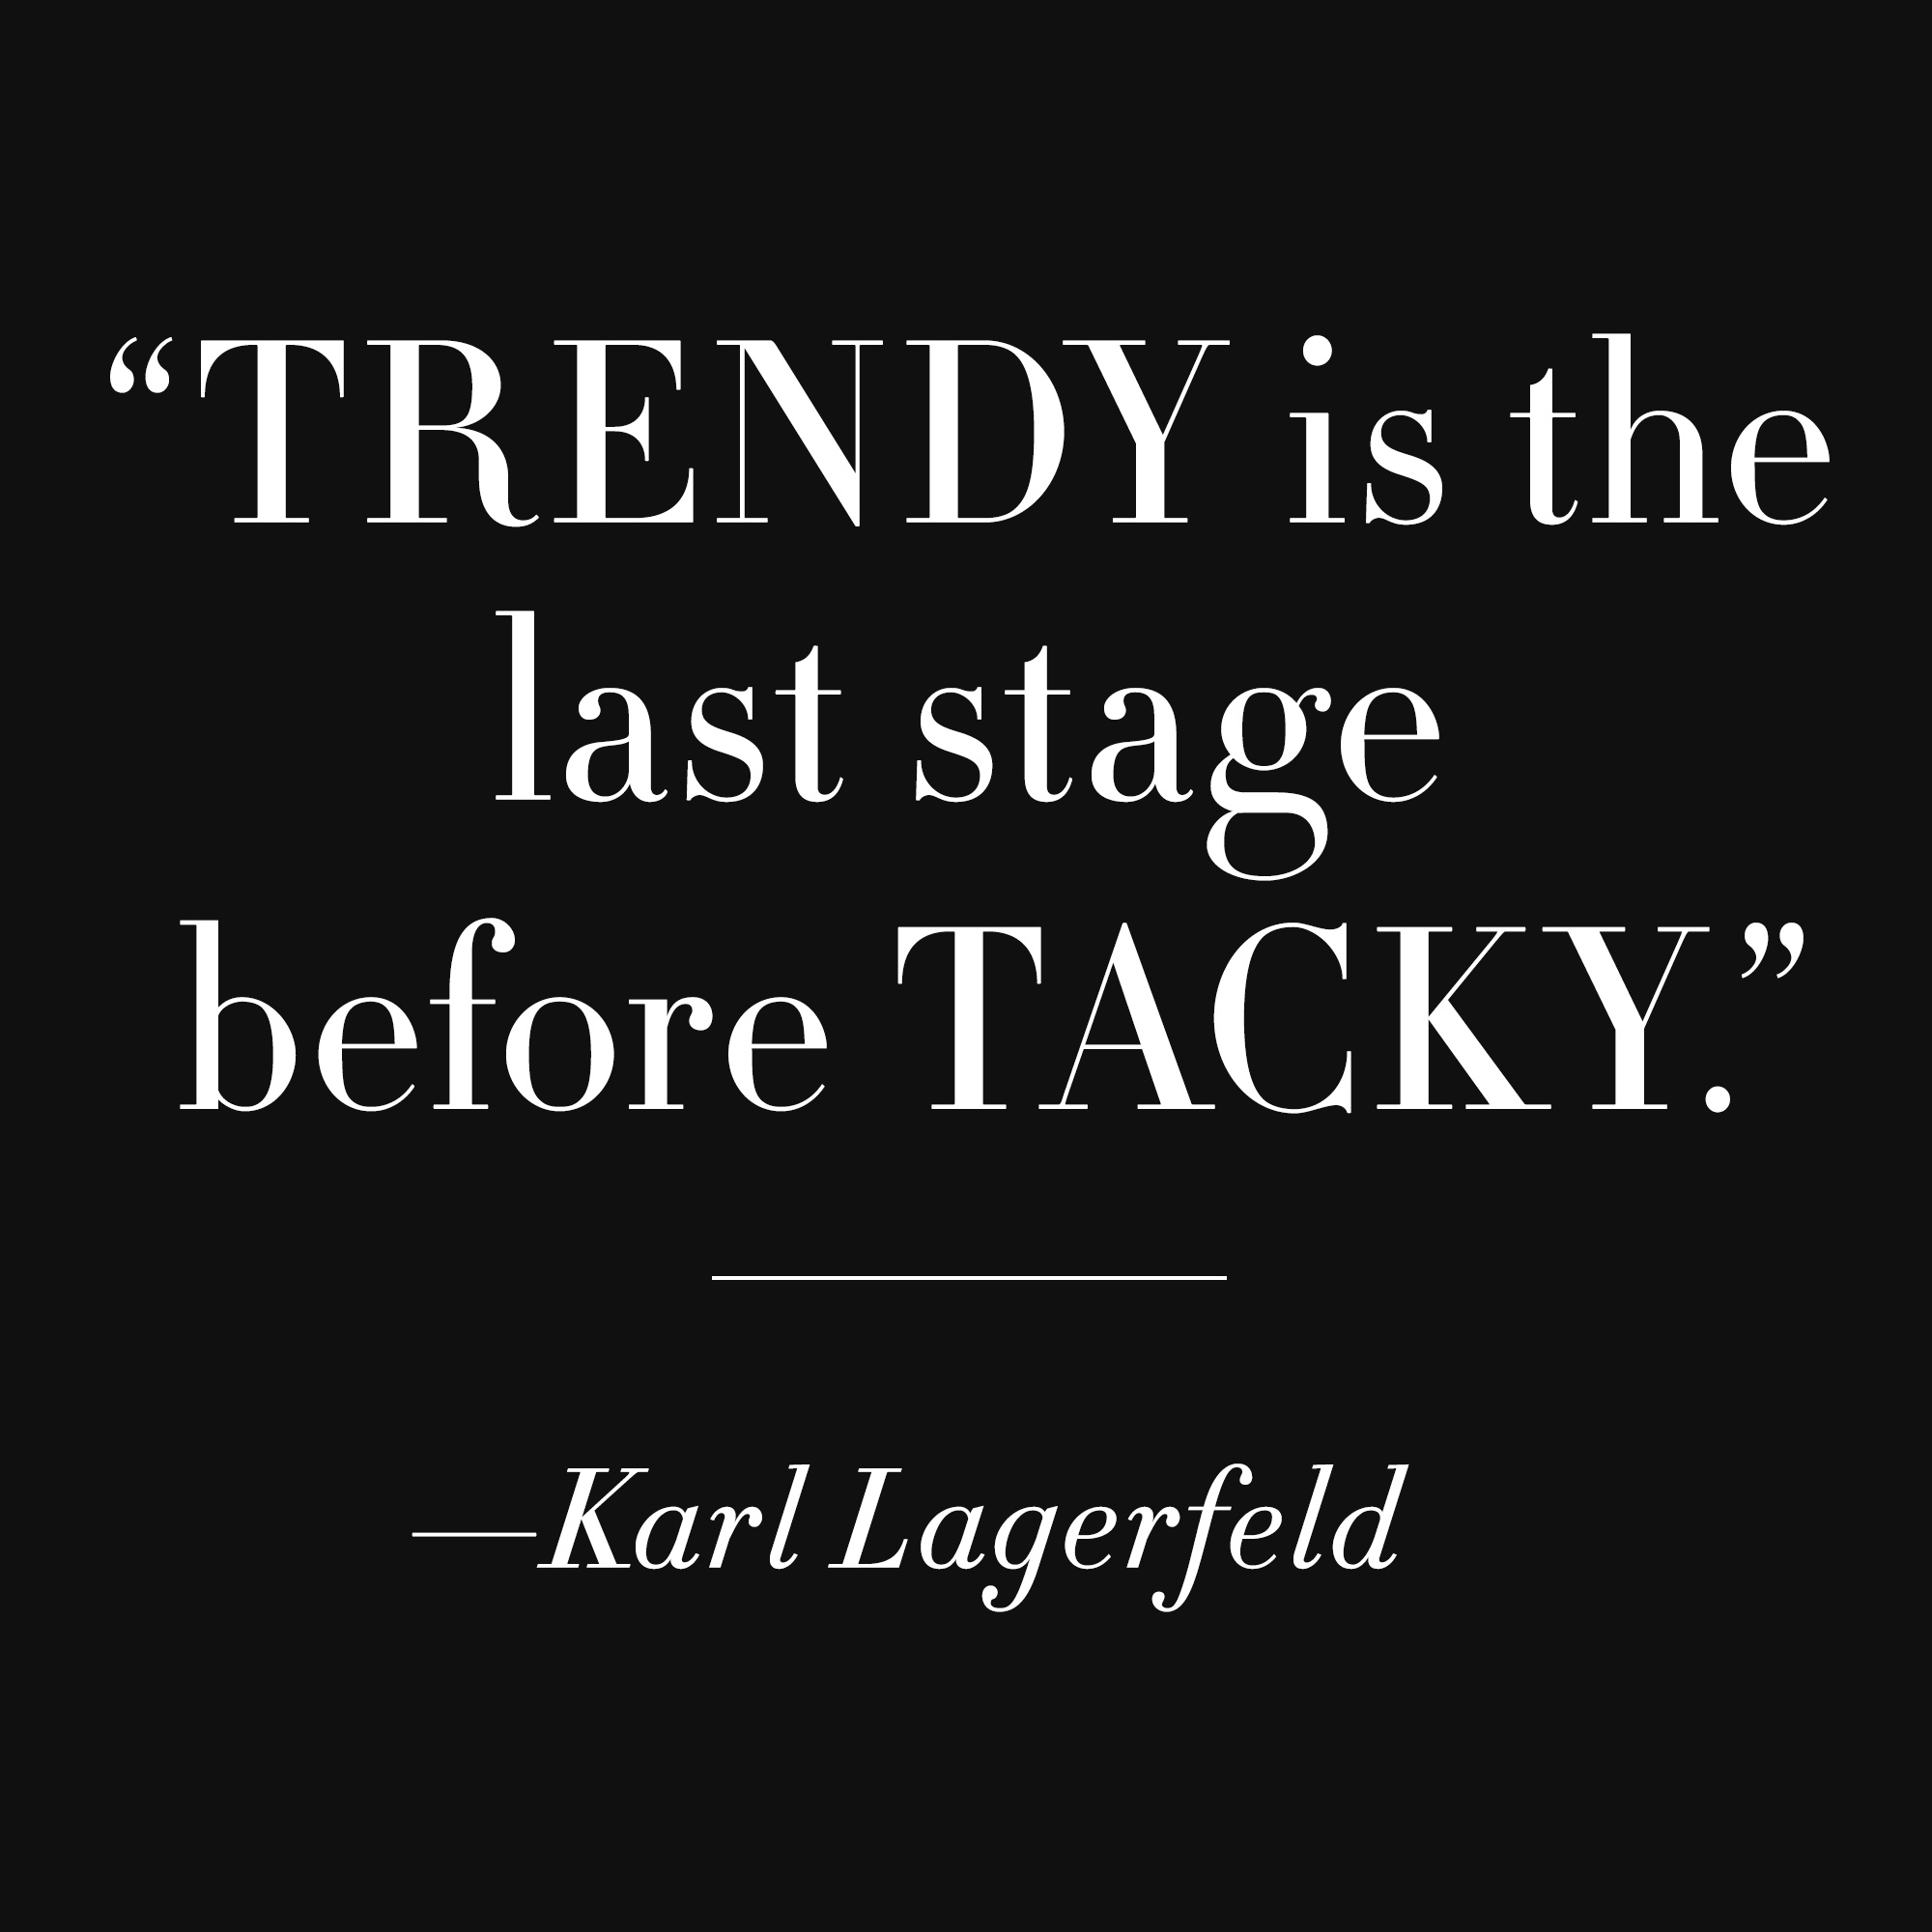 Old School Fashion Quotes: Karl Lagerfeld Fat Quotes. QuotesGram